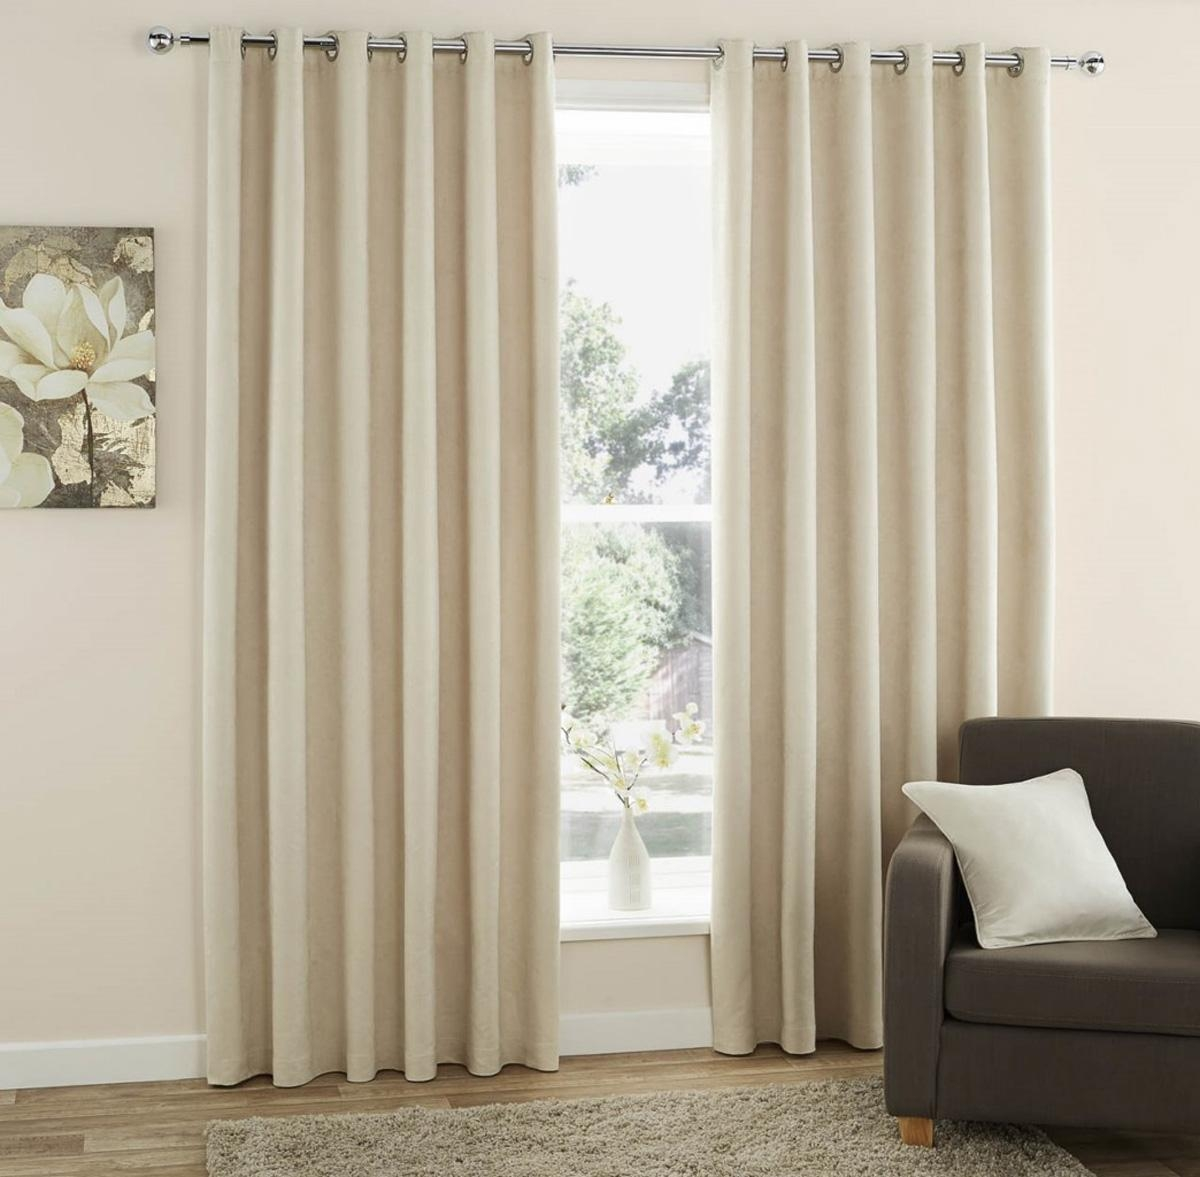 108 Inch Drop Eyelet Curtains Cheap Window Curtains Terrys Fabrics In Long Eyelet Curtains (Image 1 of 15)